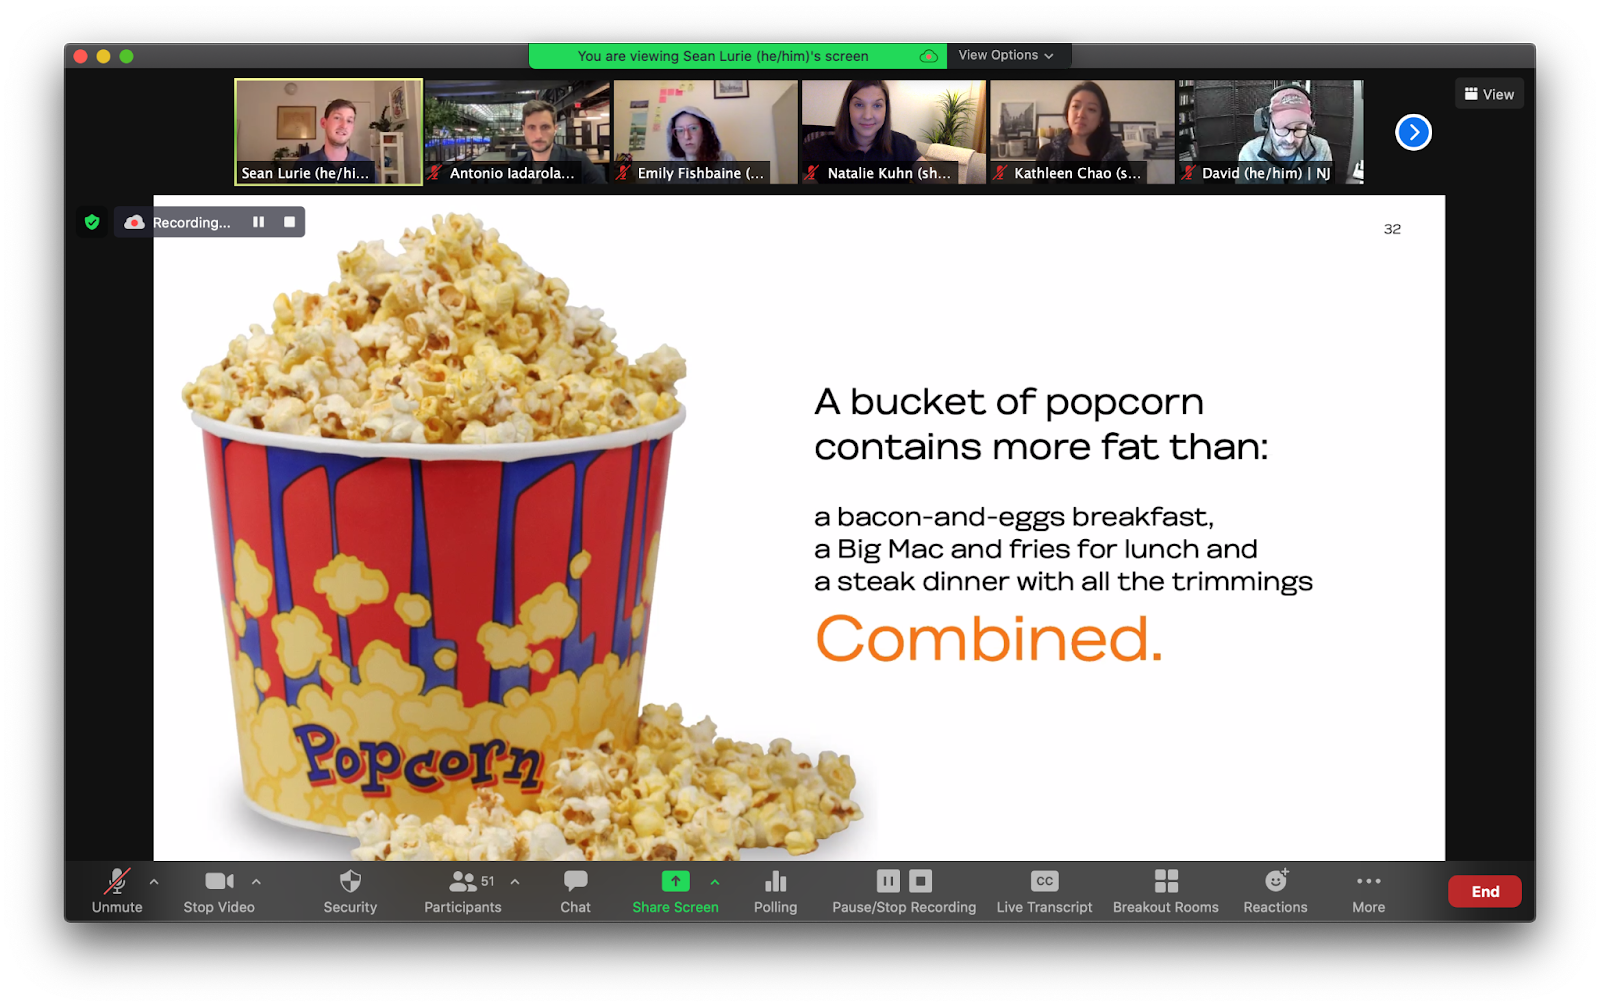 """Zoom screenshot of a bucket of popcorn with the headline: """"A bucket of popcorn contains more fat than a bacon-and-eggs breakfast, a big Mac and fries for lunch, and a steak dinner with all the trimmings combined."""""""